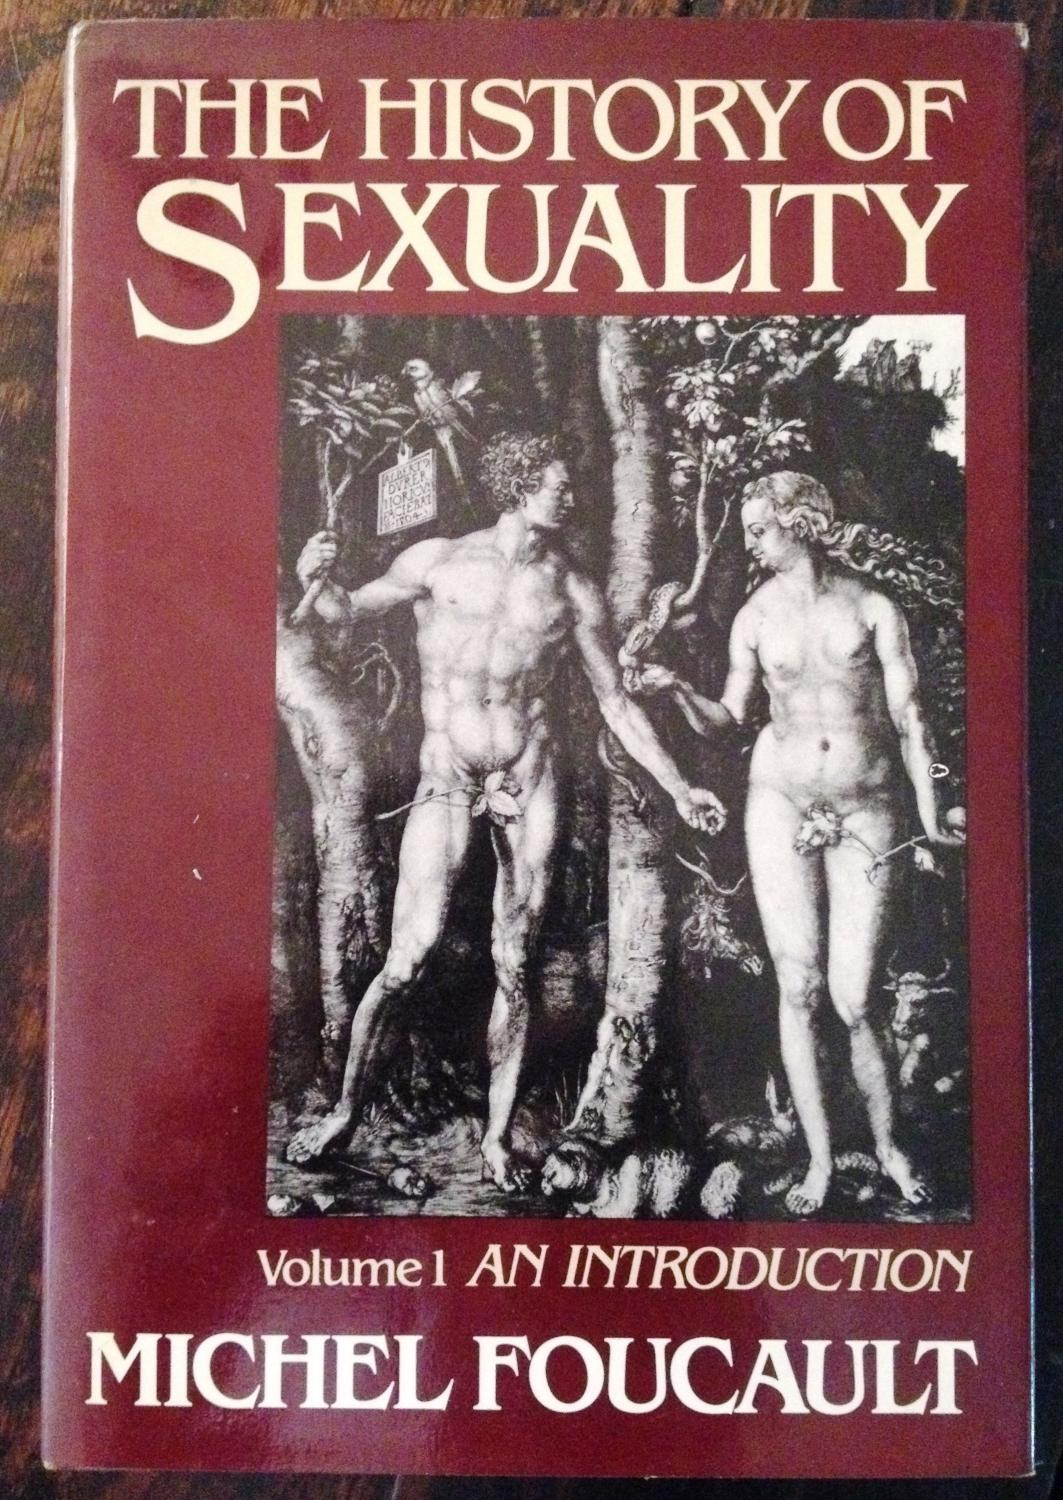 Foucault history of sexuality volume 1 1978